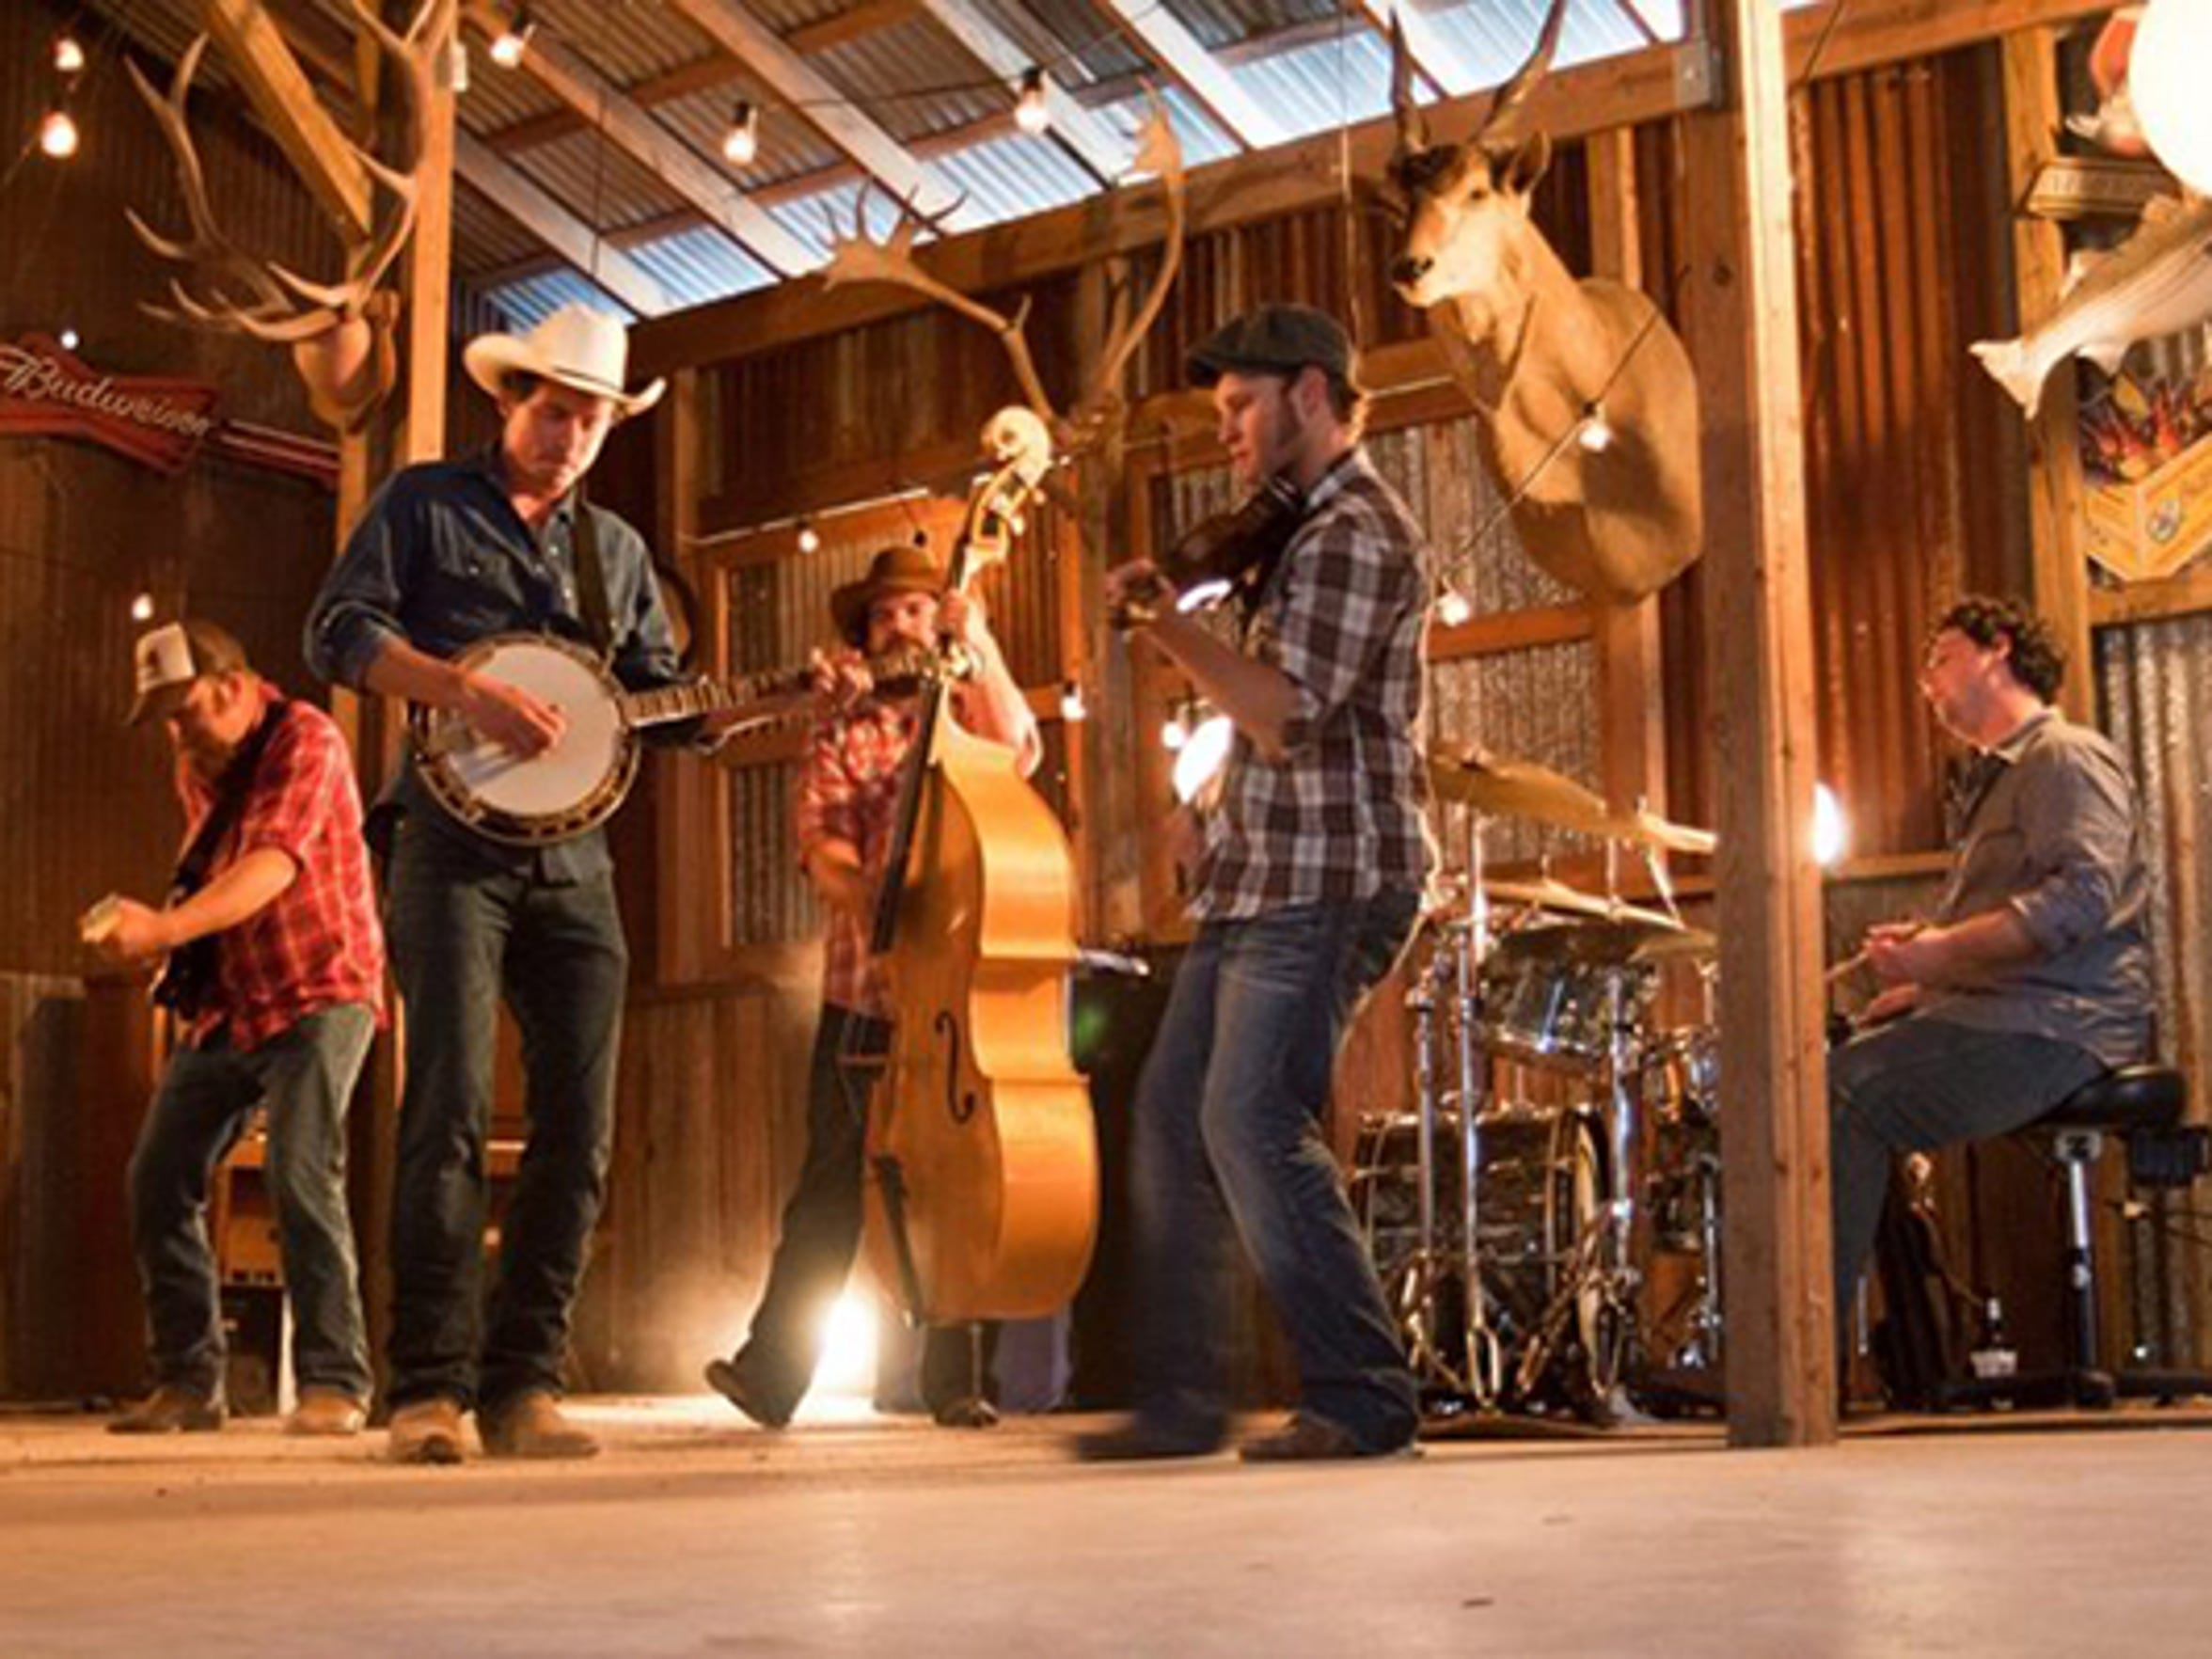 Turnpike Troubadours will appear at 10 p.m. Saturday, Oct. 3, at the Southern New Mexico State Fair.